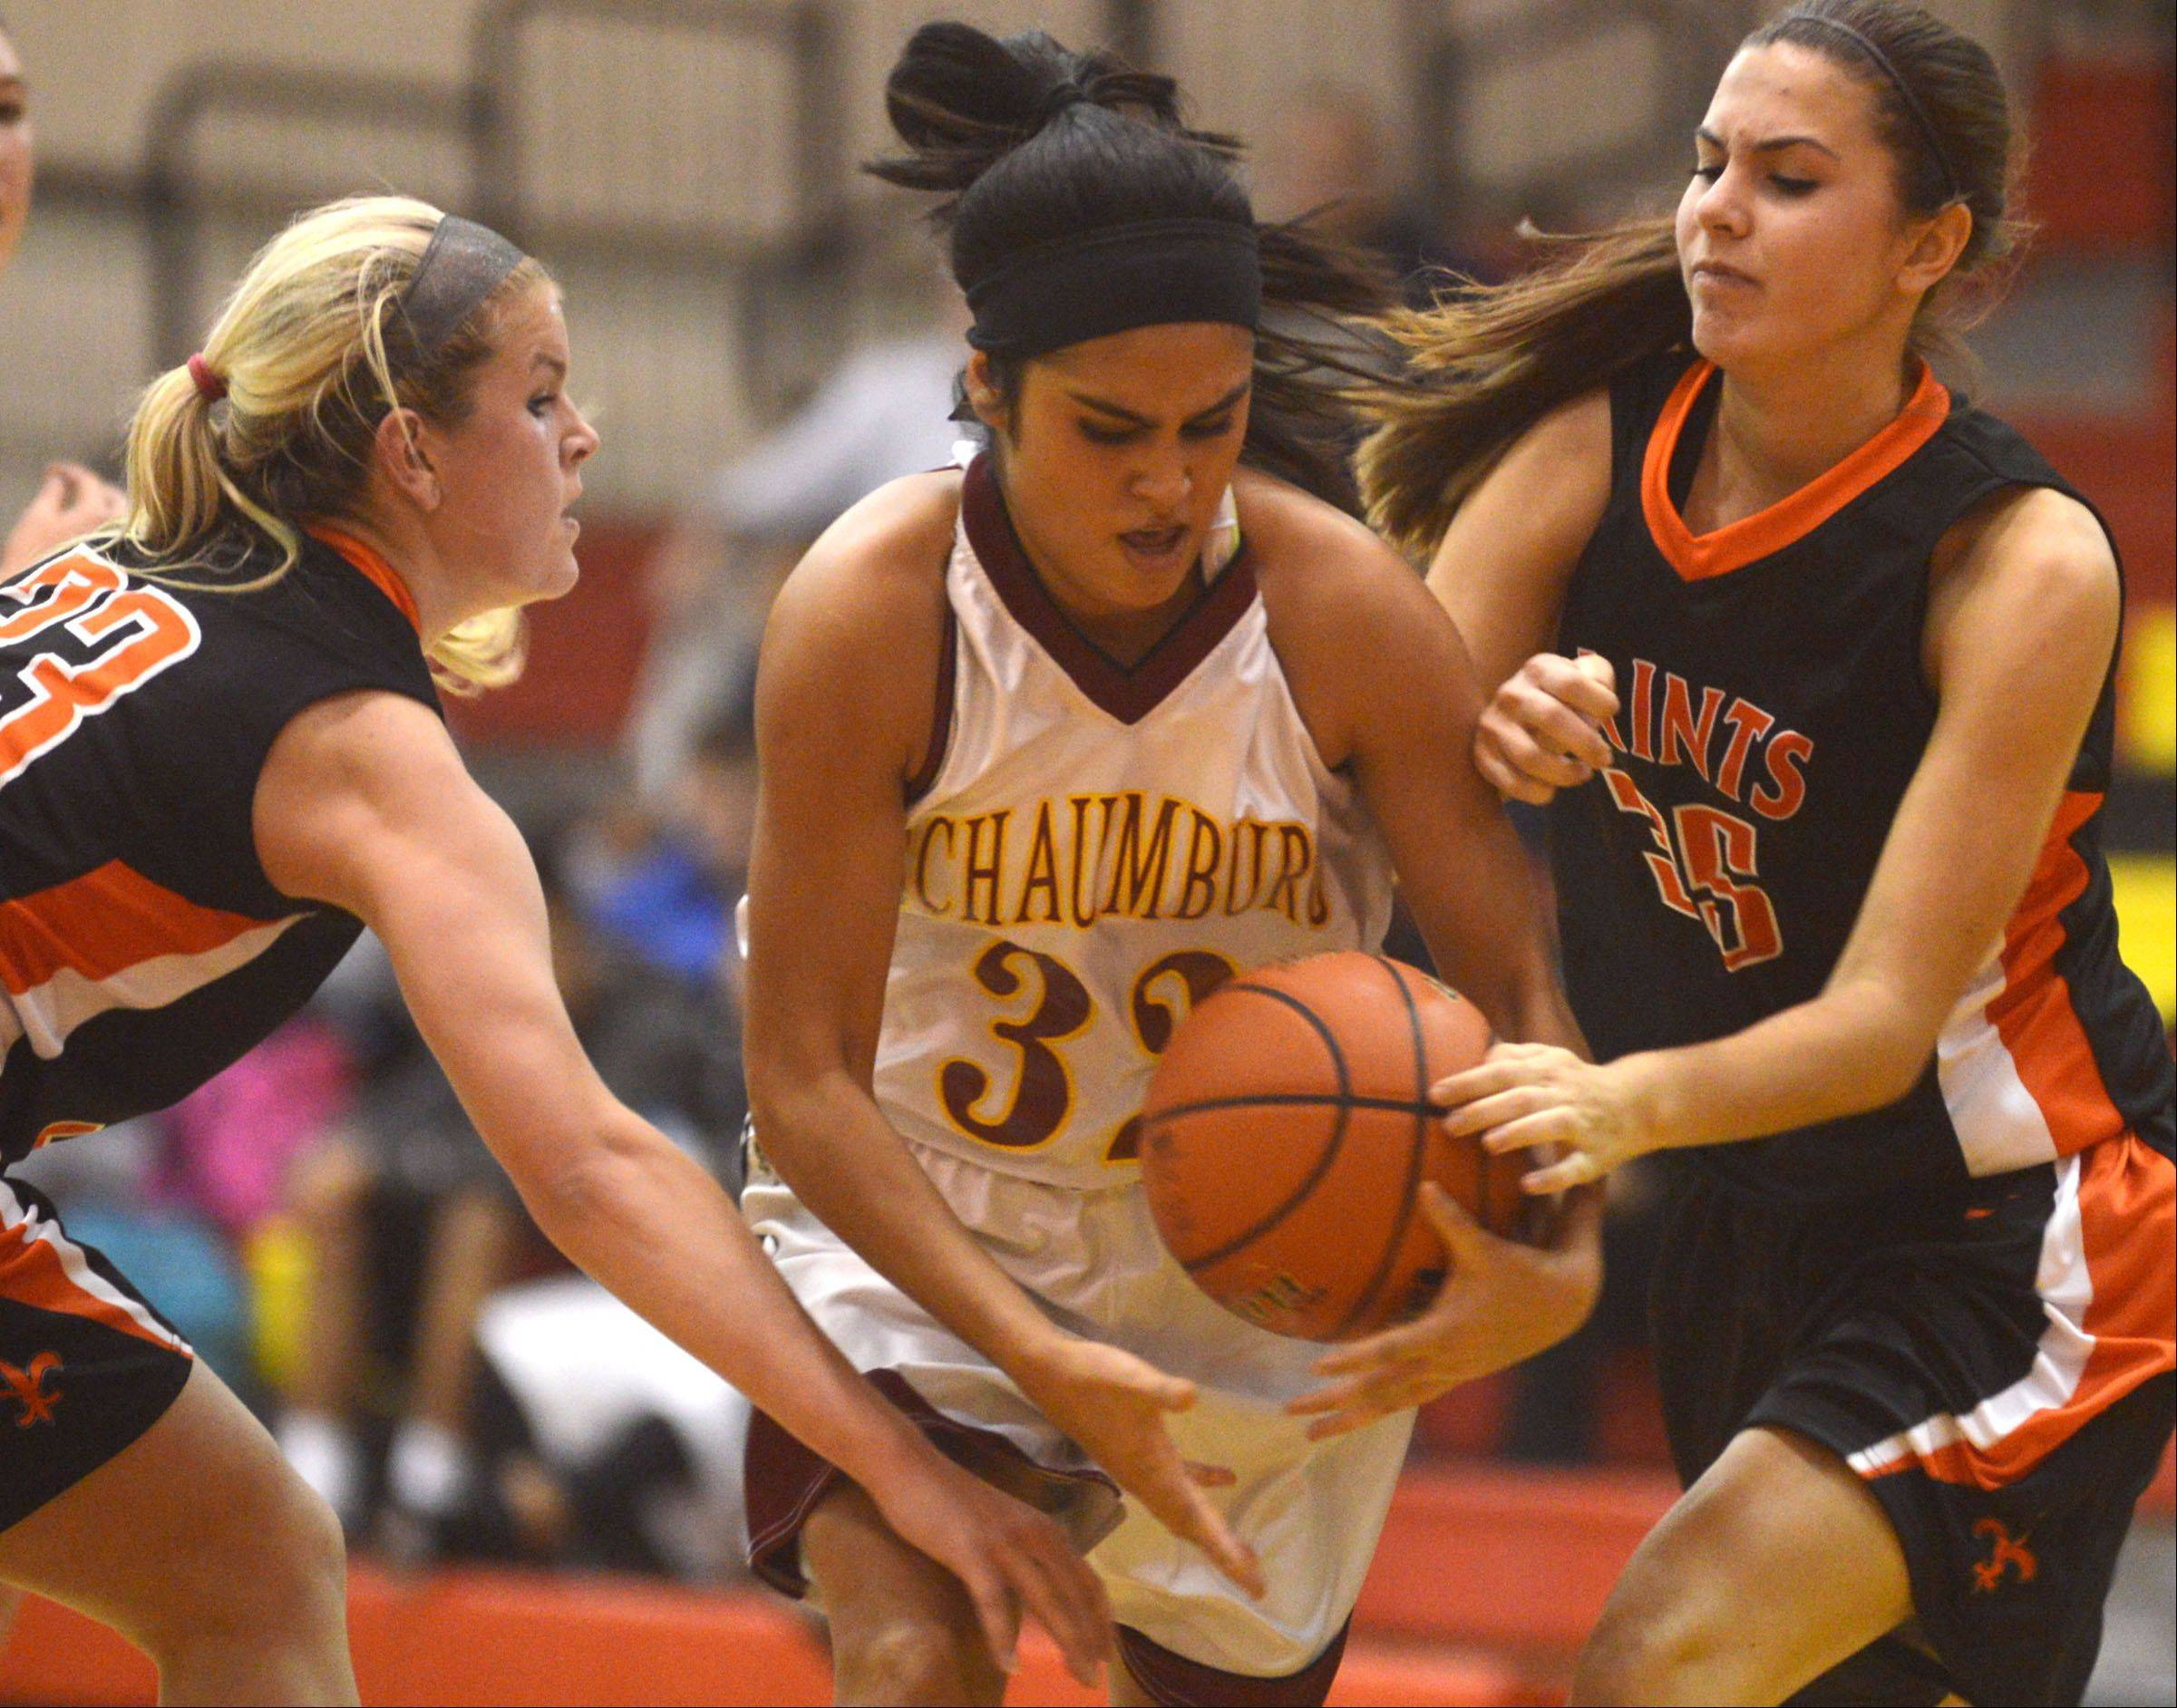 St. Charles East's Hannah Nowling, left, and Hannah Vitkus, right, try to stop Schaumburg's Lillian Chavarria, center, during a varsity girls basketball game at Schaumburg High School on Monday evening.